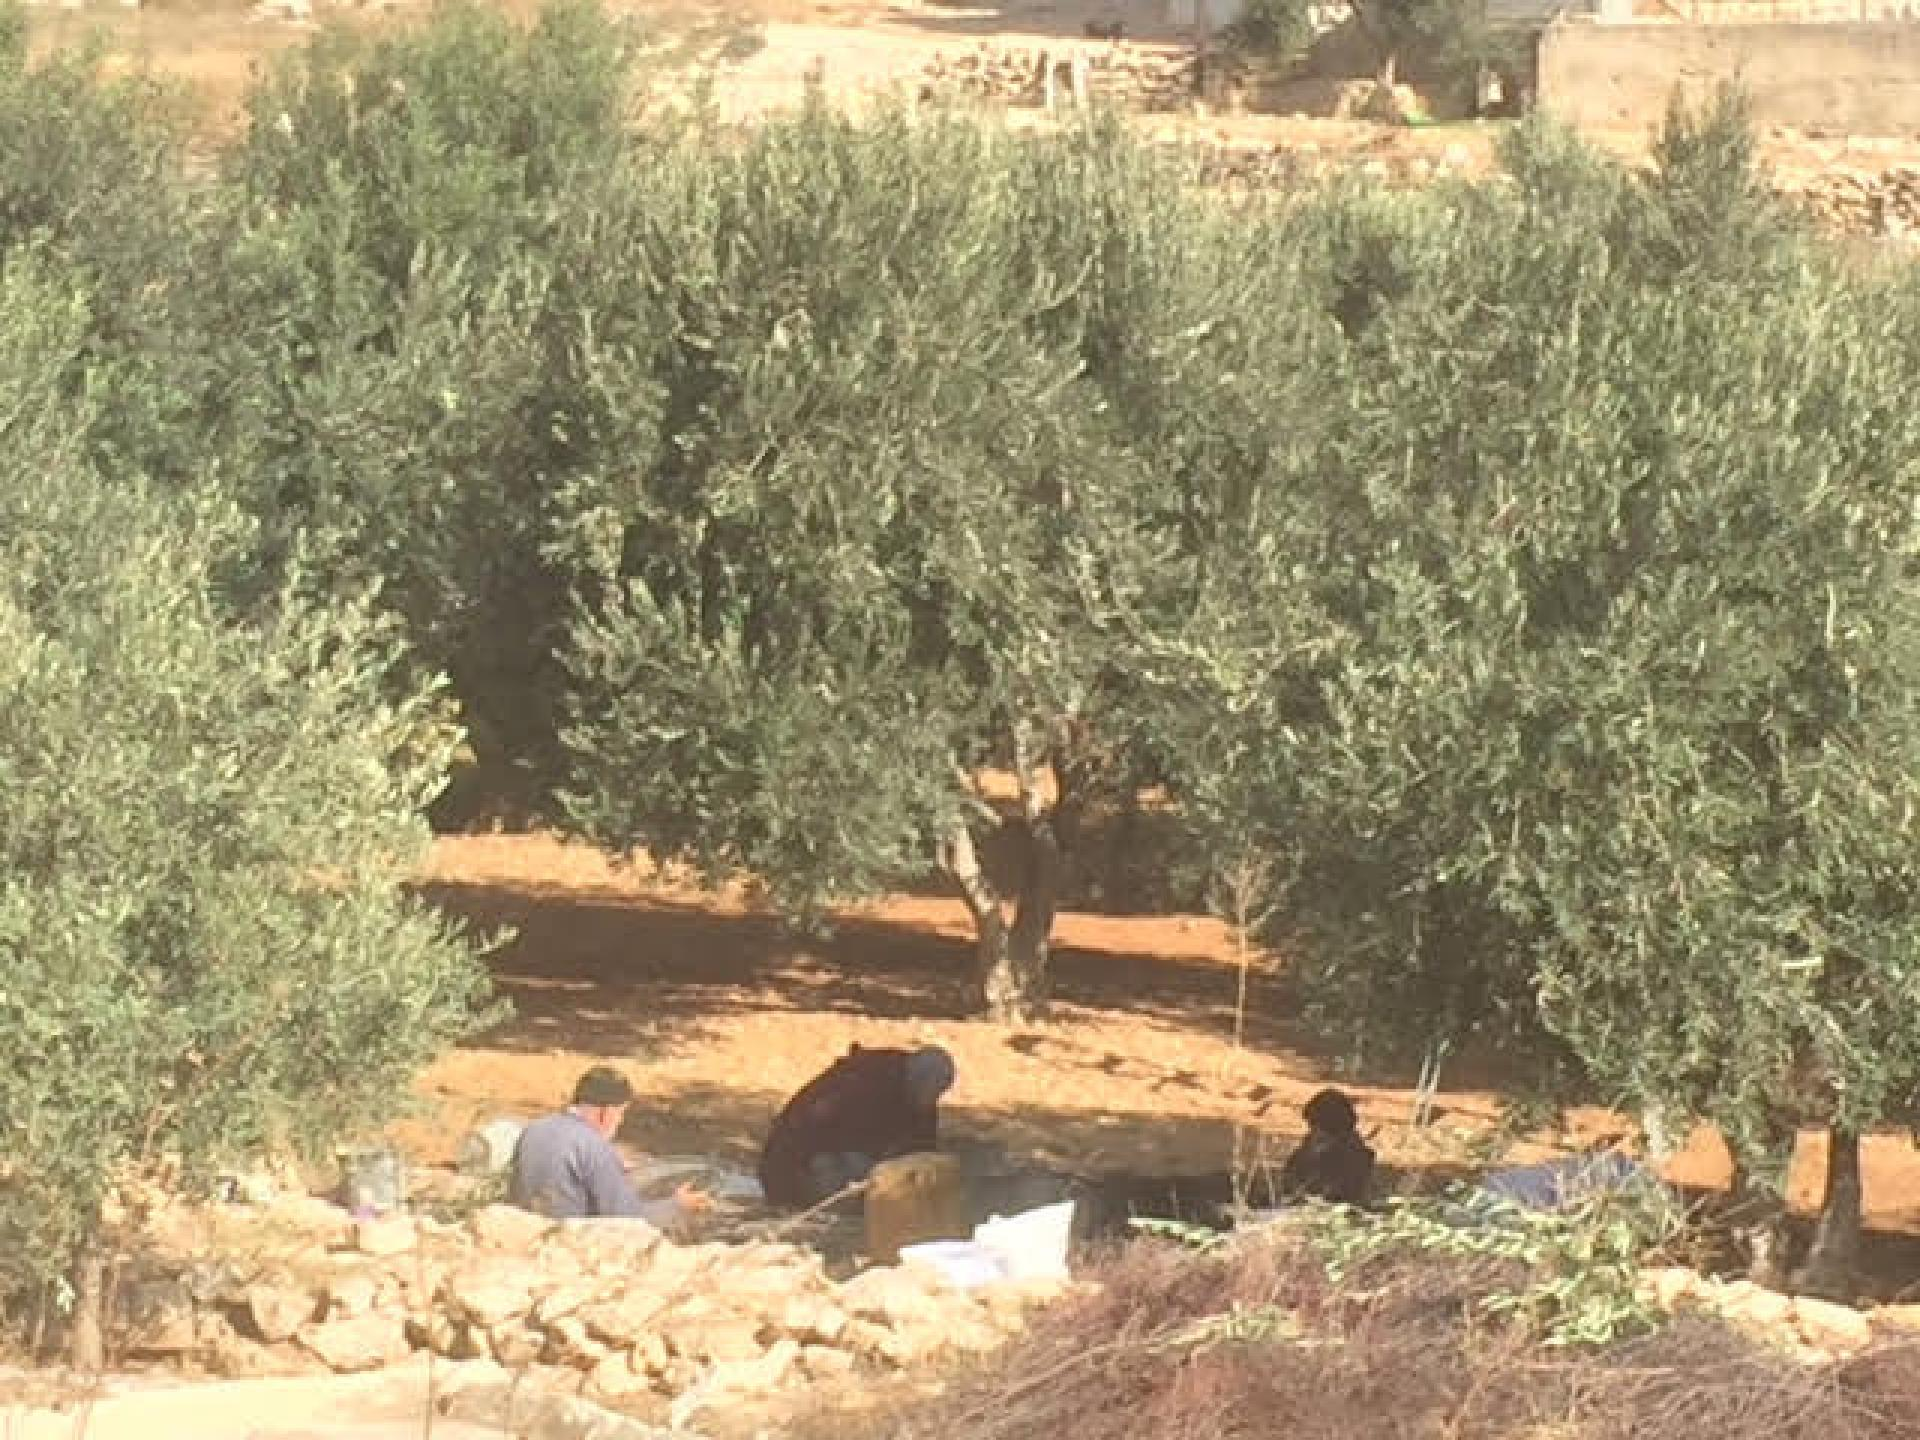 First rain and the Palestinians are in a hurry to finish the olive harvest